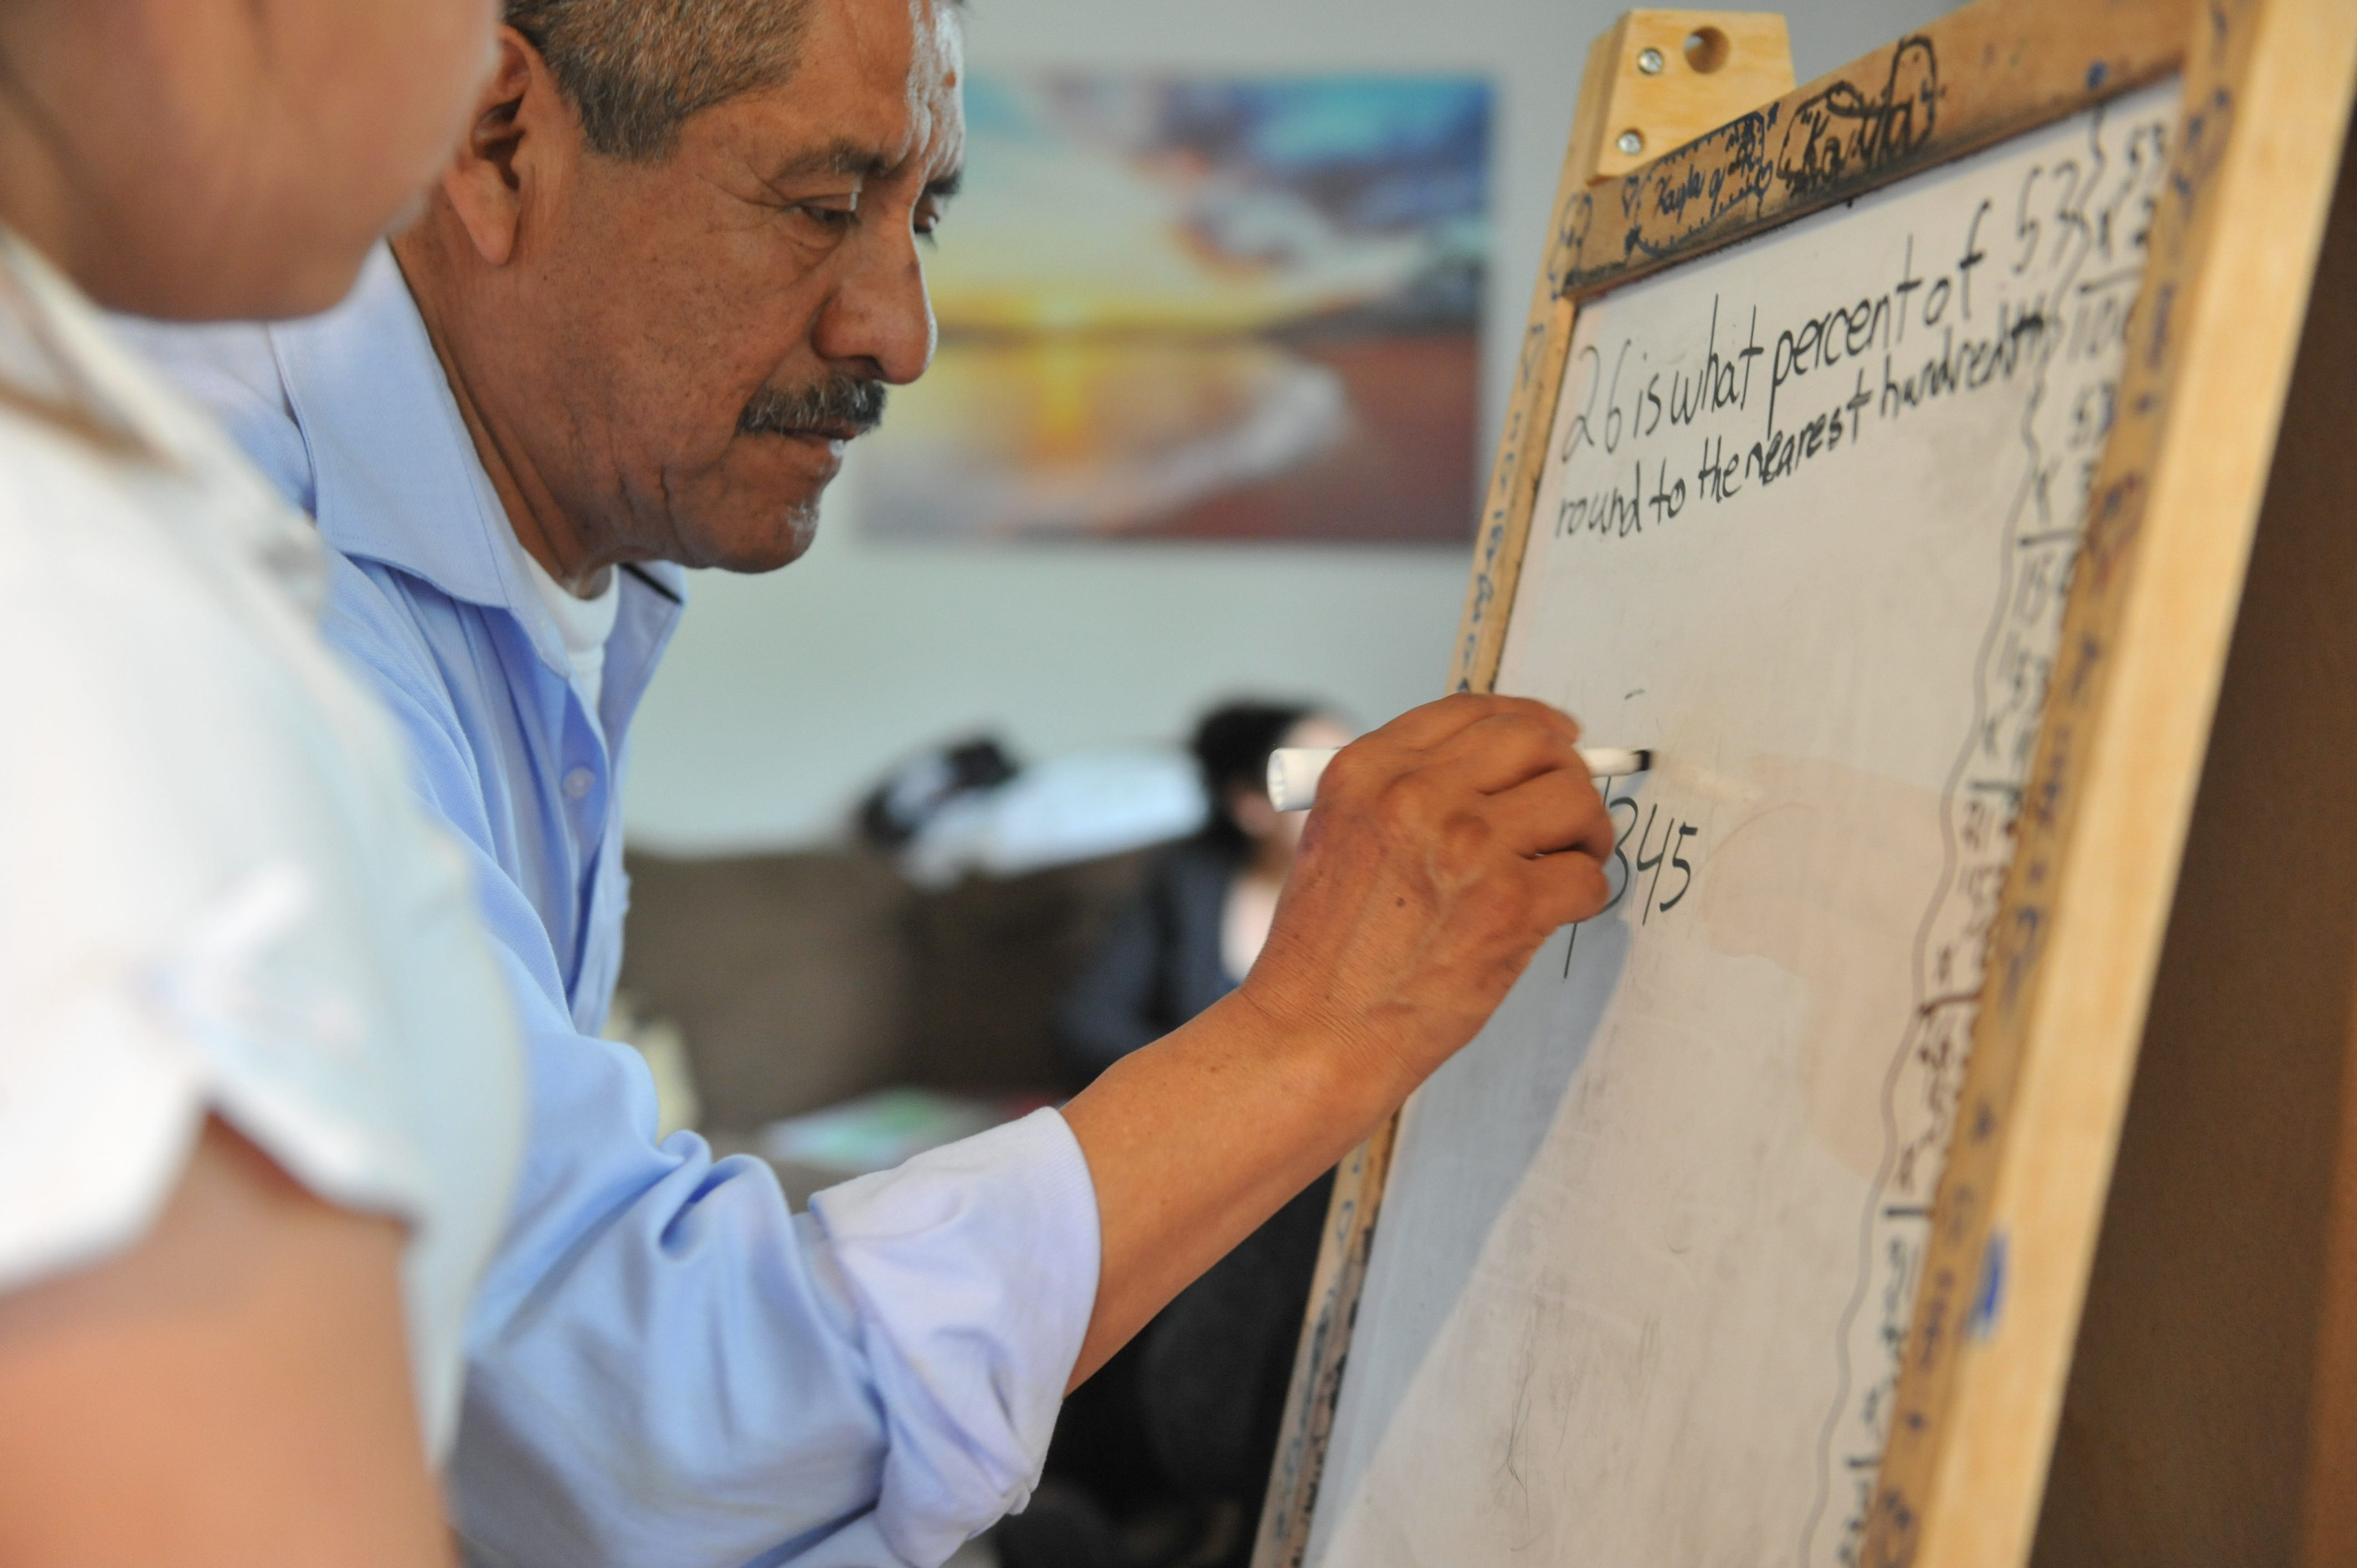 Adolfo González helps his granddaughter Kayla with her homework at his Salinas apartment.